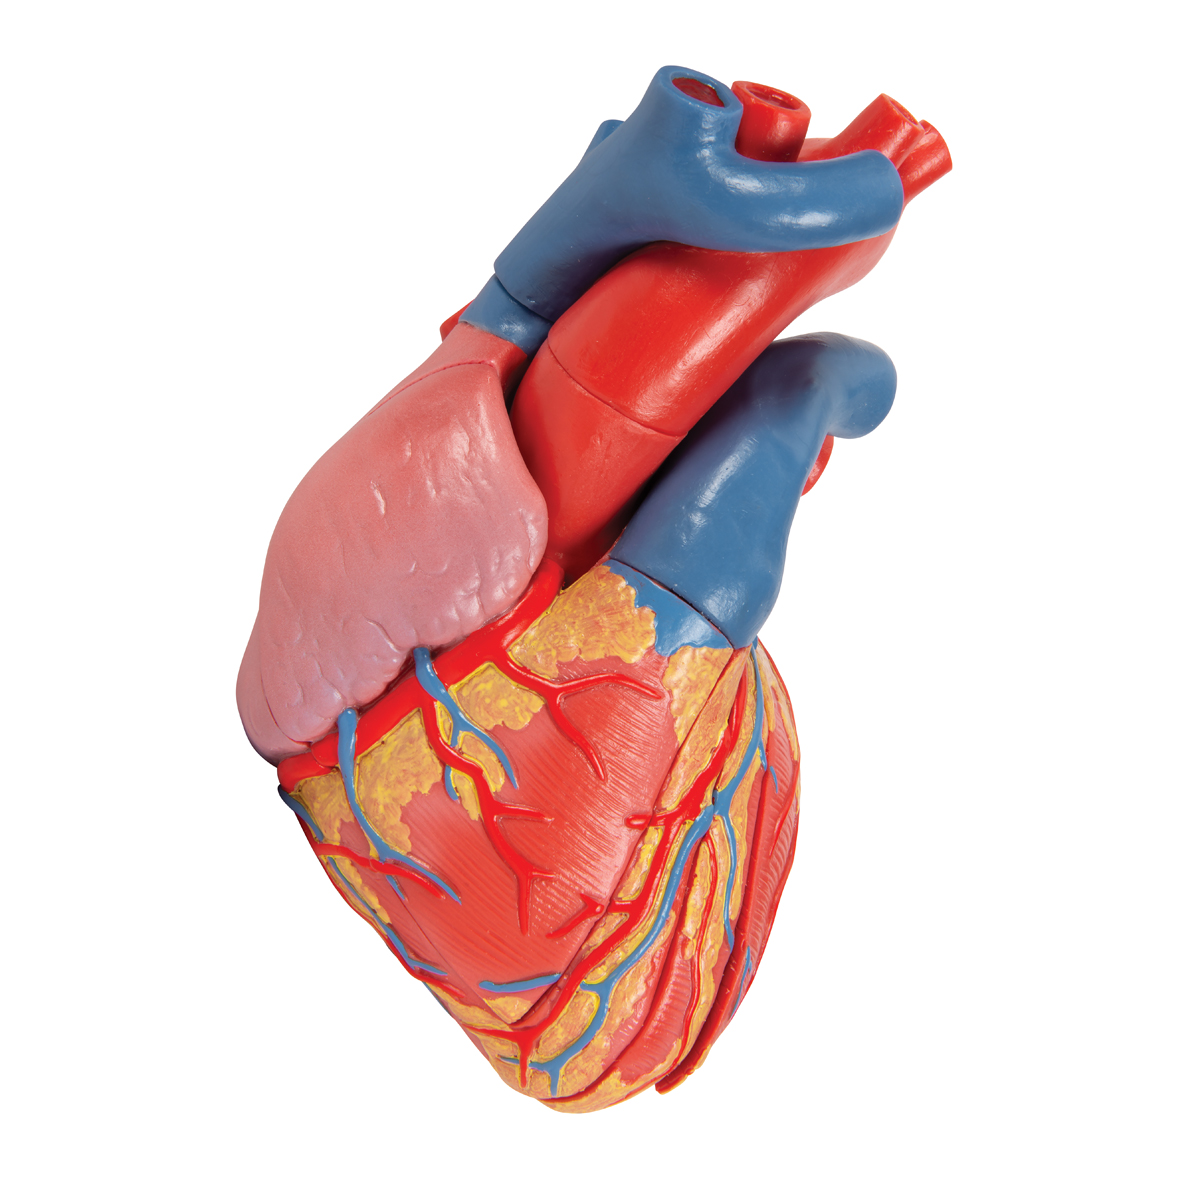 Magnetic Heart Model Life Size 5 Parts 1010006 3b